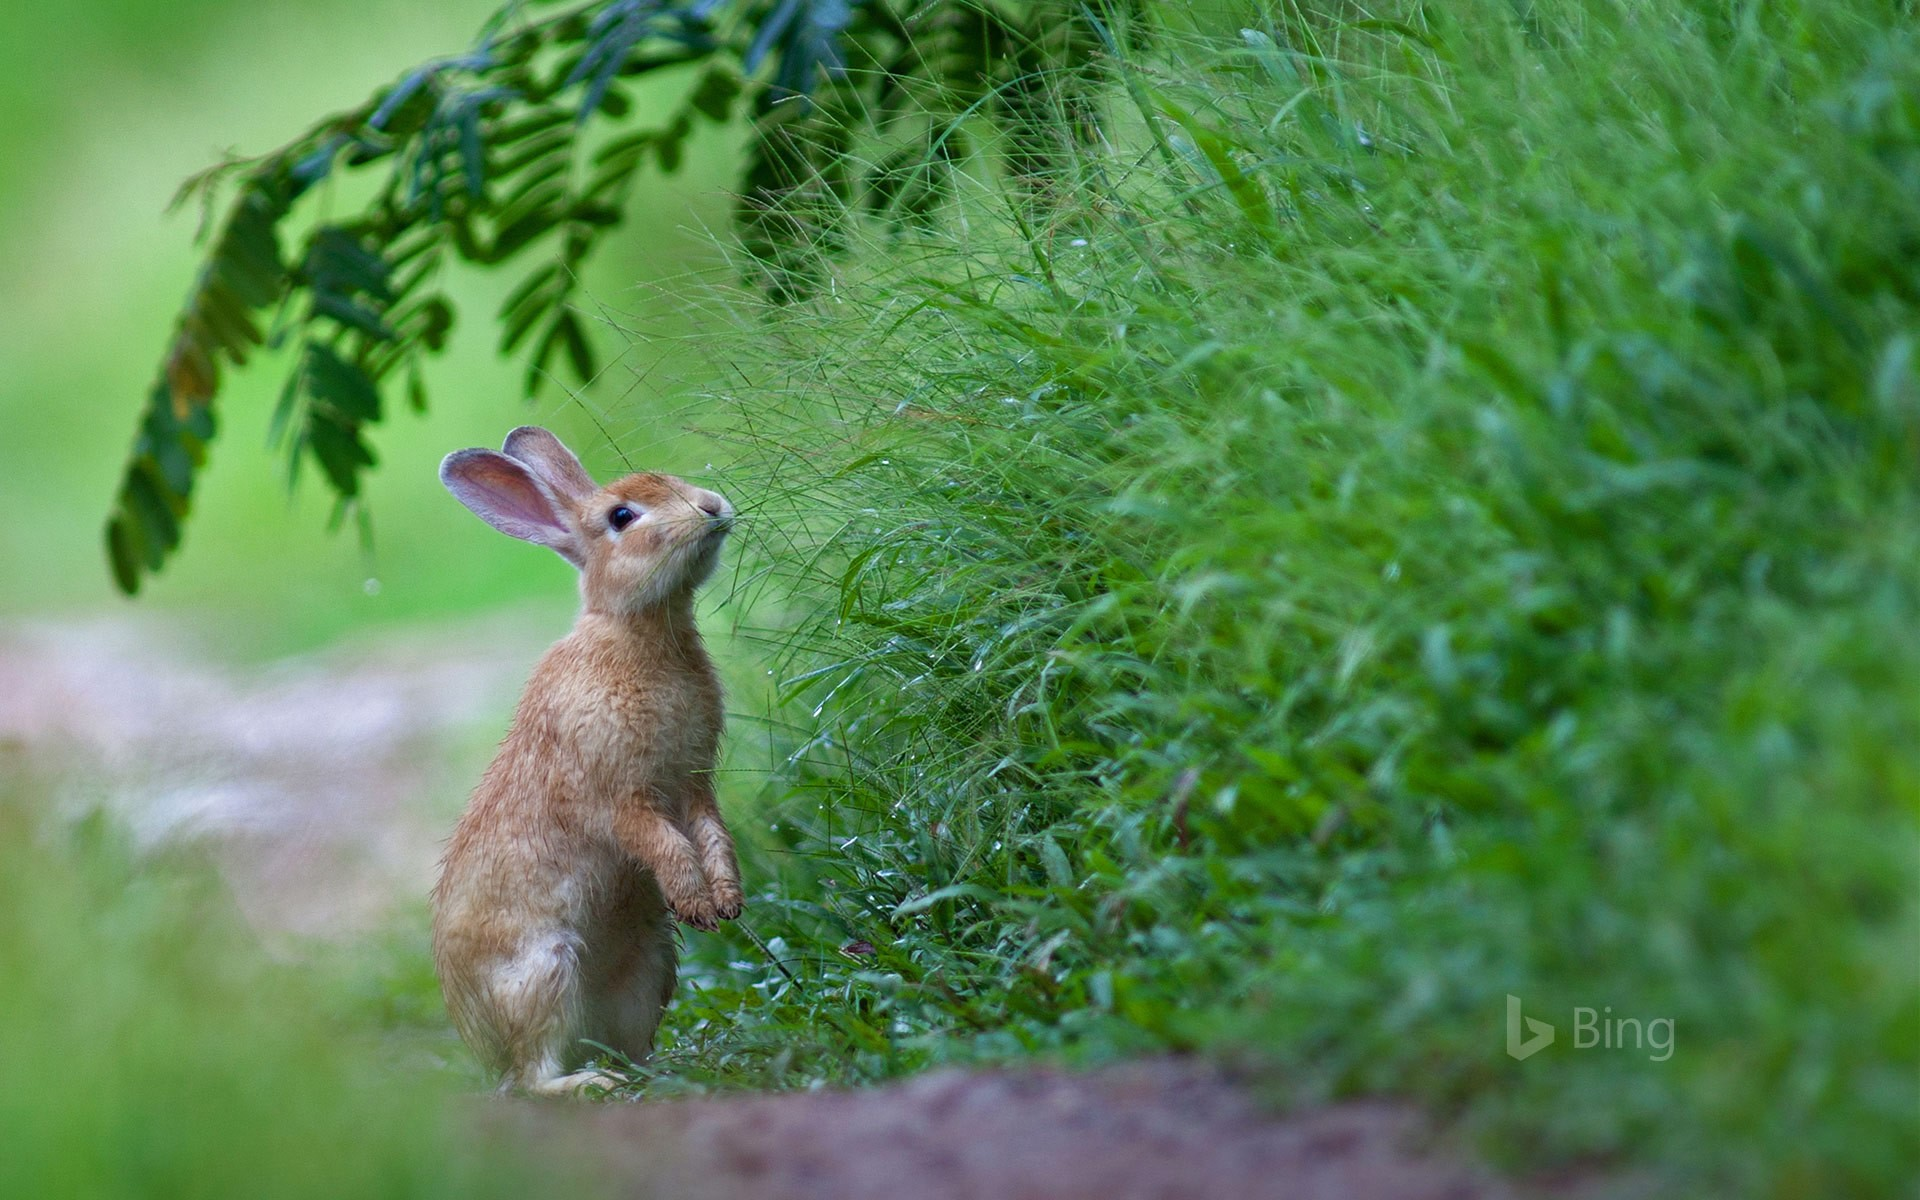 A rabbit in the grass for Easter